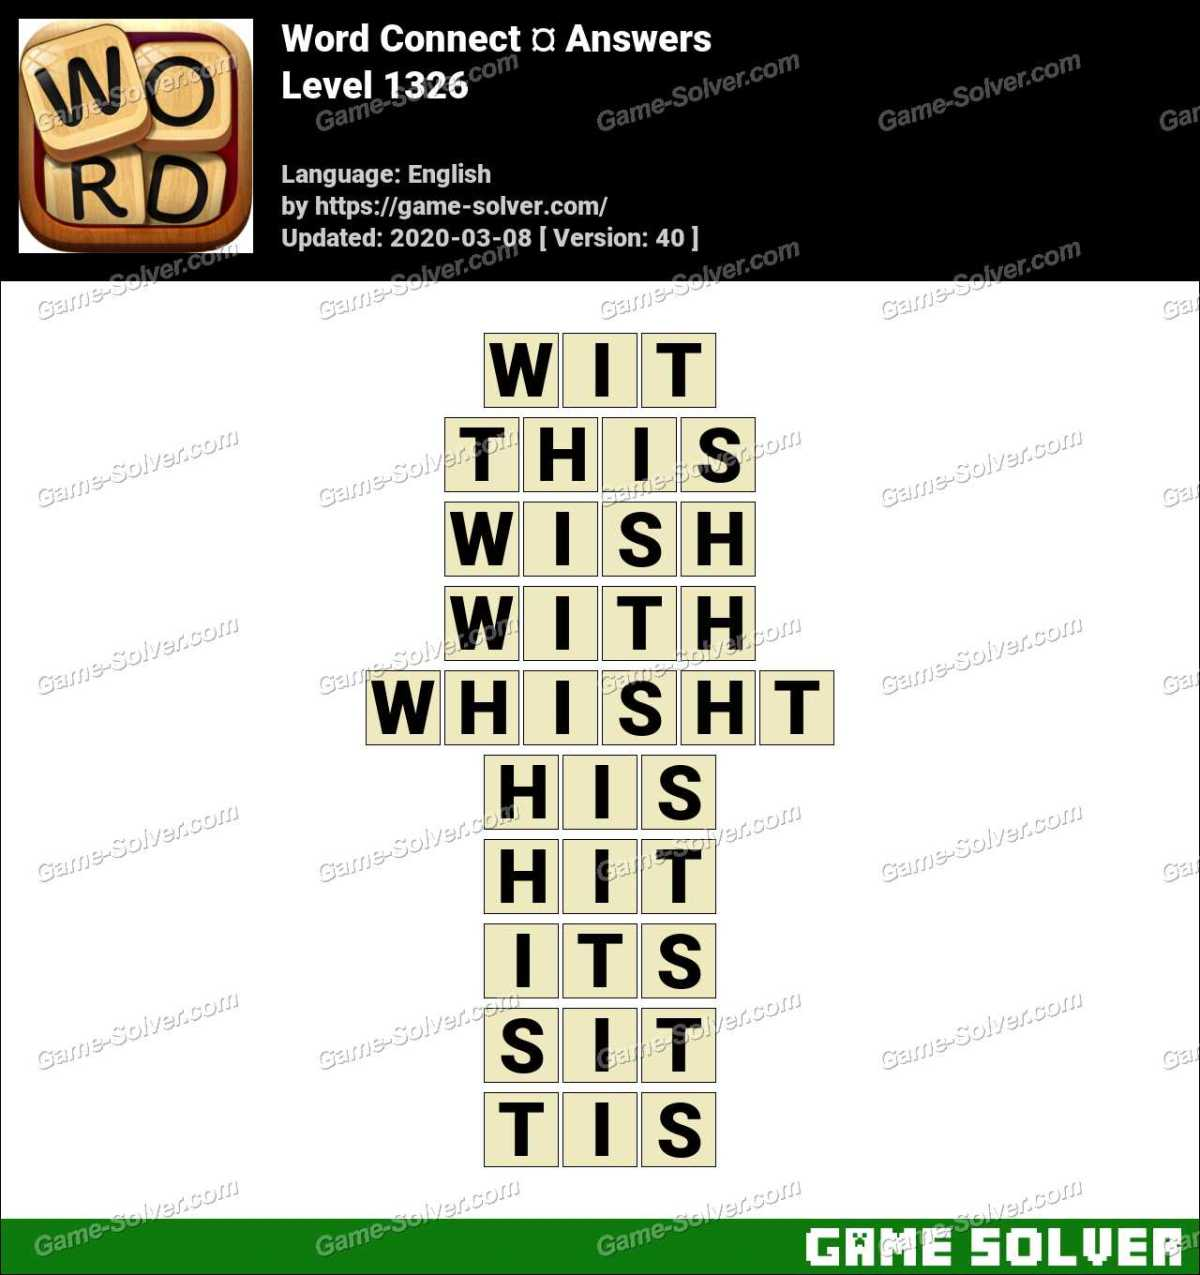 Word Connect Level 1326 Answers